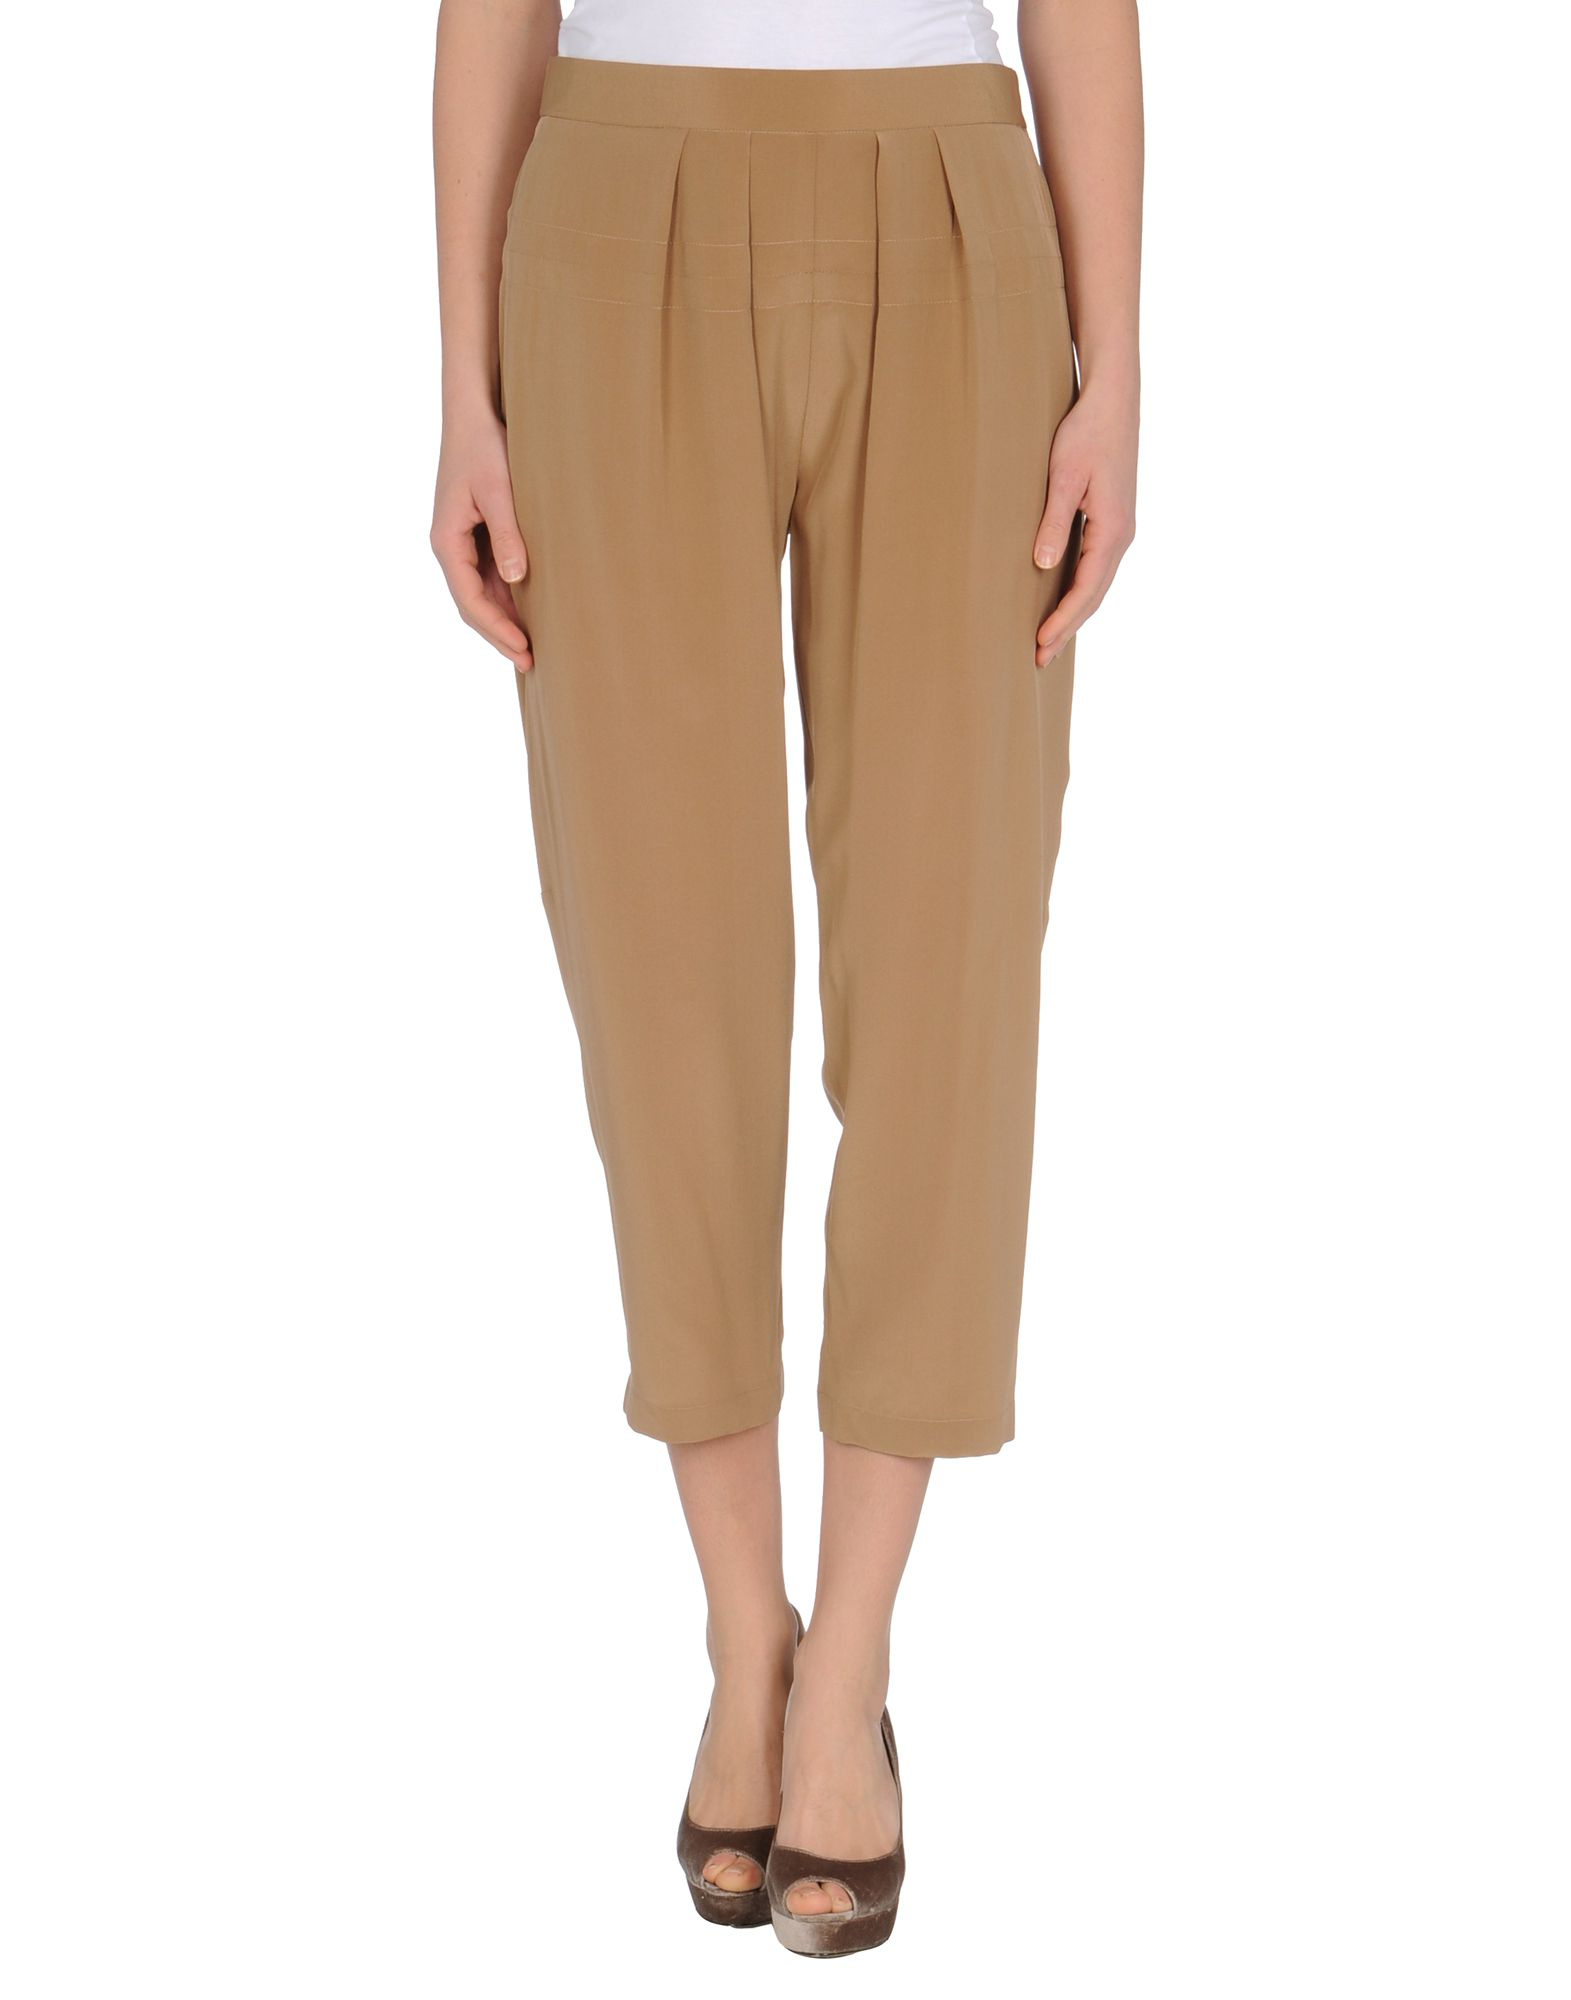 Stuccu: Best Deals on brown harem pants. Up To 70% offBest Offers · Exclusive Deals · Lowest Prices · Compare PricesTypes: Electronics, Toys, Fashion, Home Improvement, Power tools, Sports equipment.